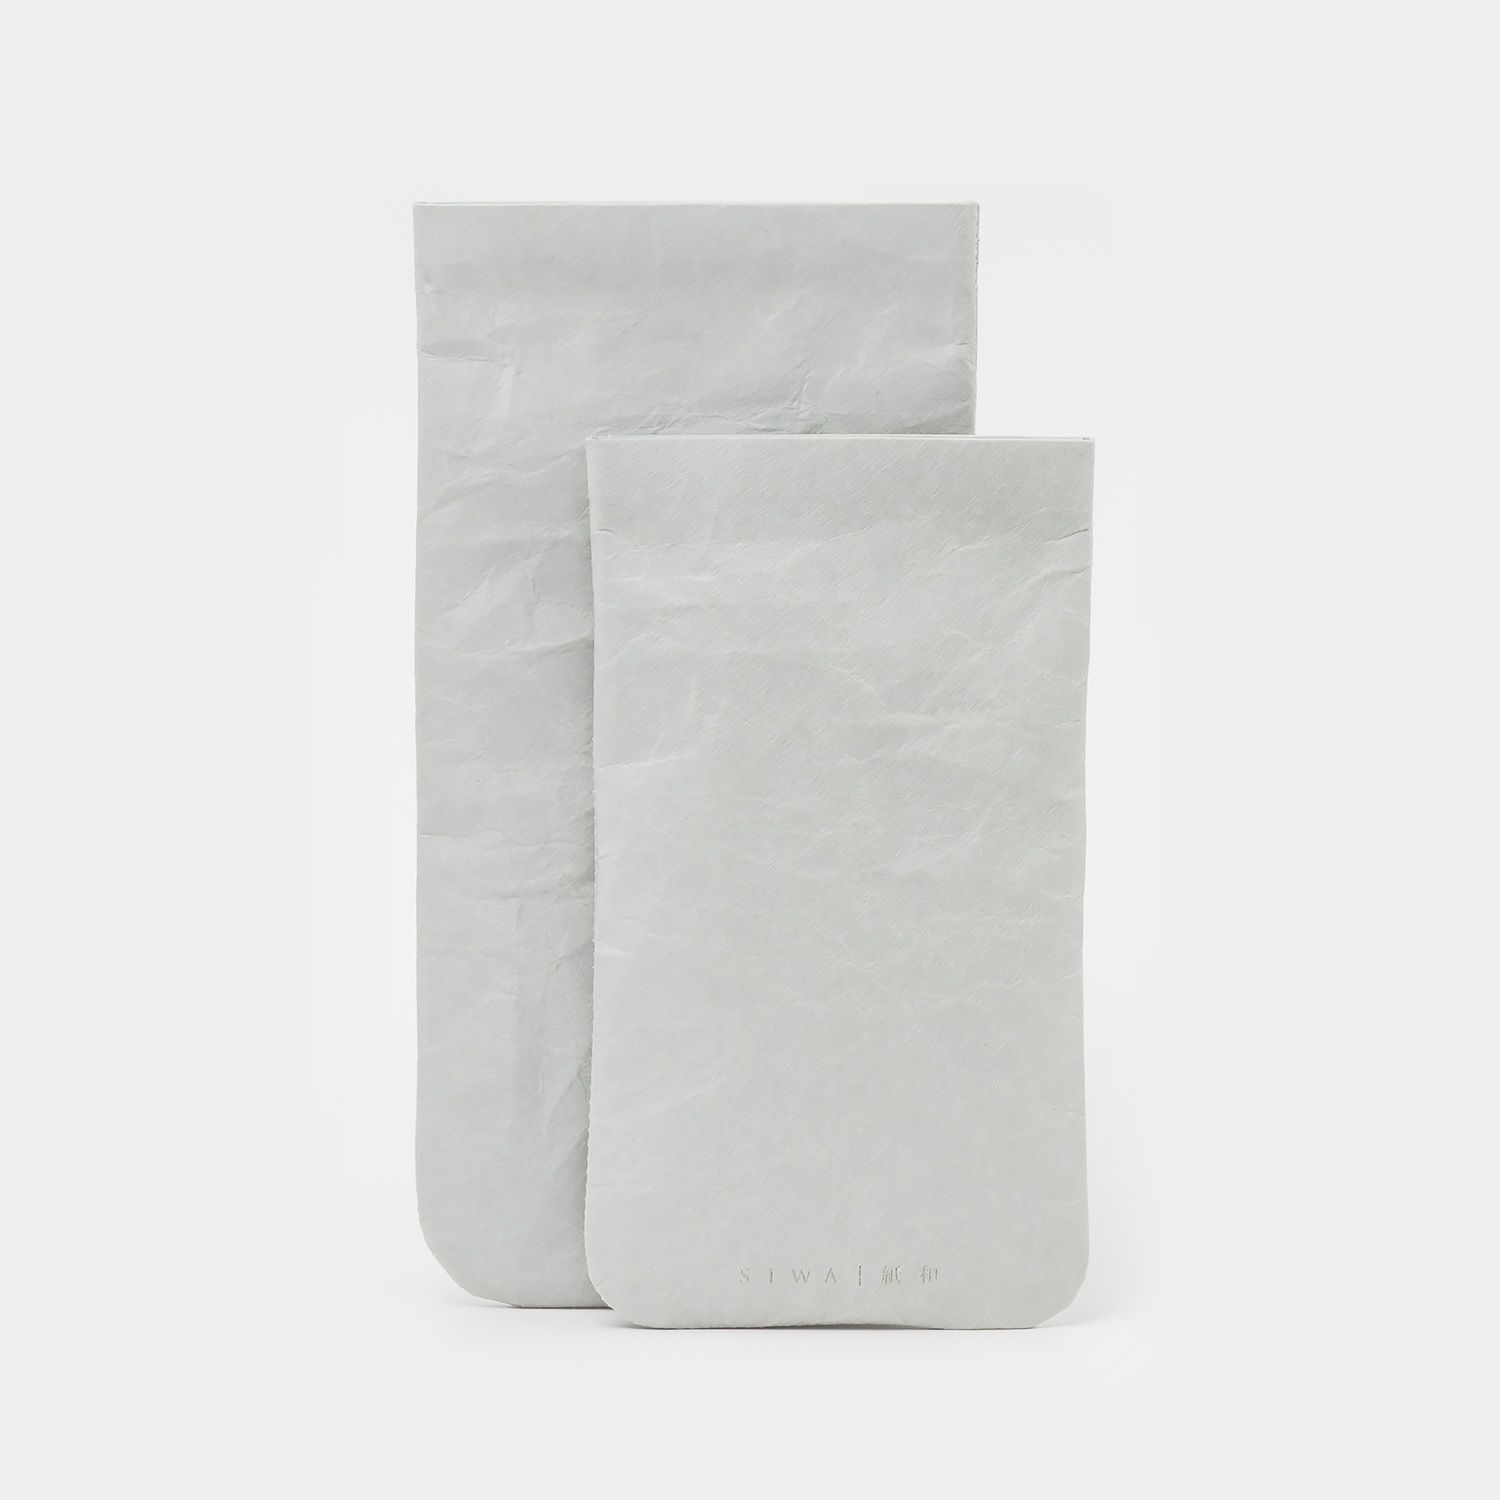 Siwa Paper Pouch — Ode to Things